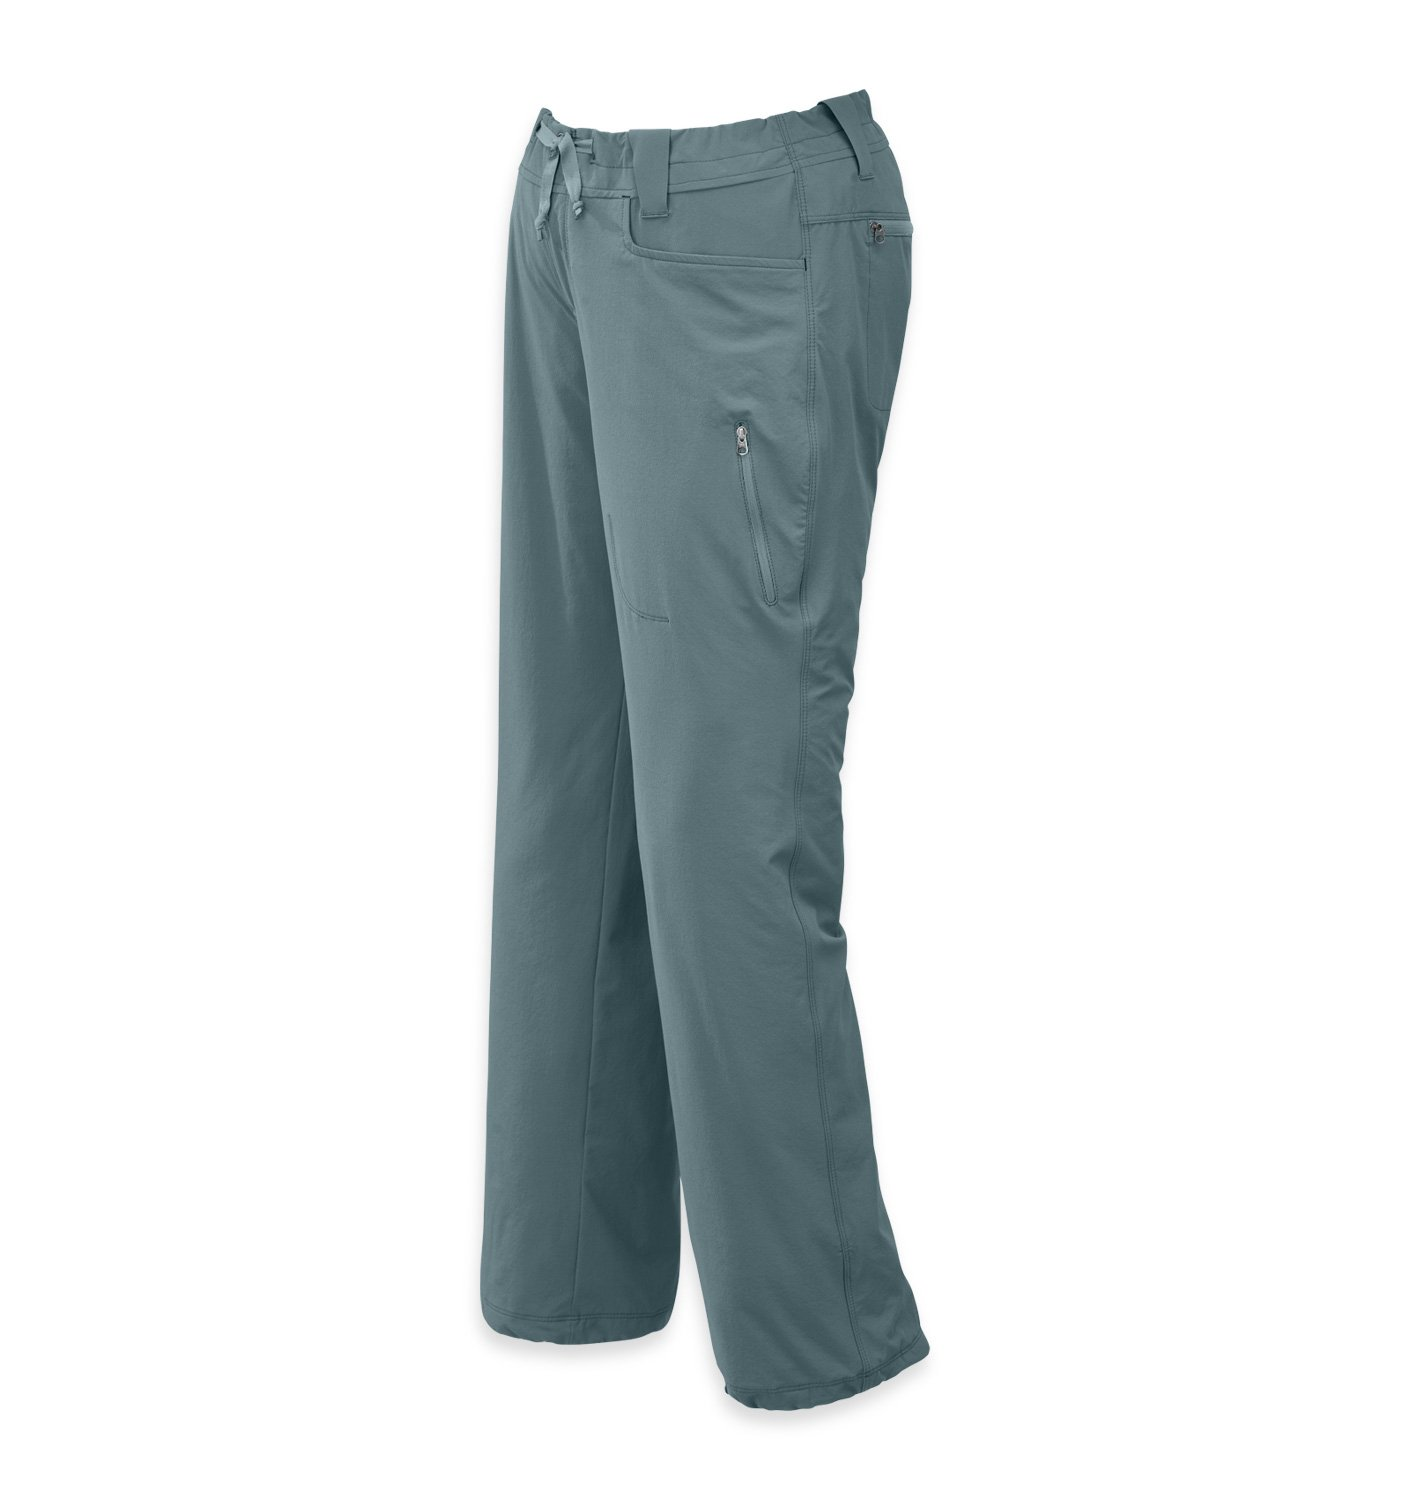 Outdoor Research Womens Ferrosi Pants,Mushroom,2 95525771-P